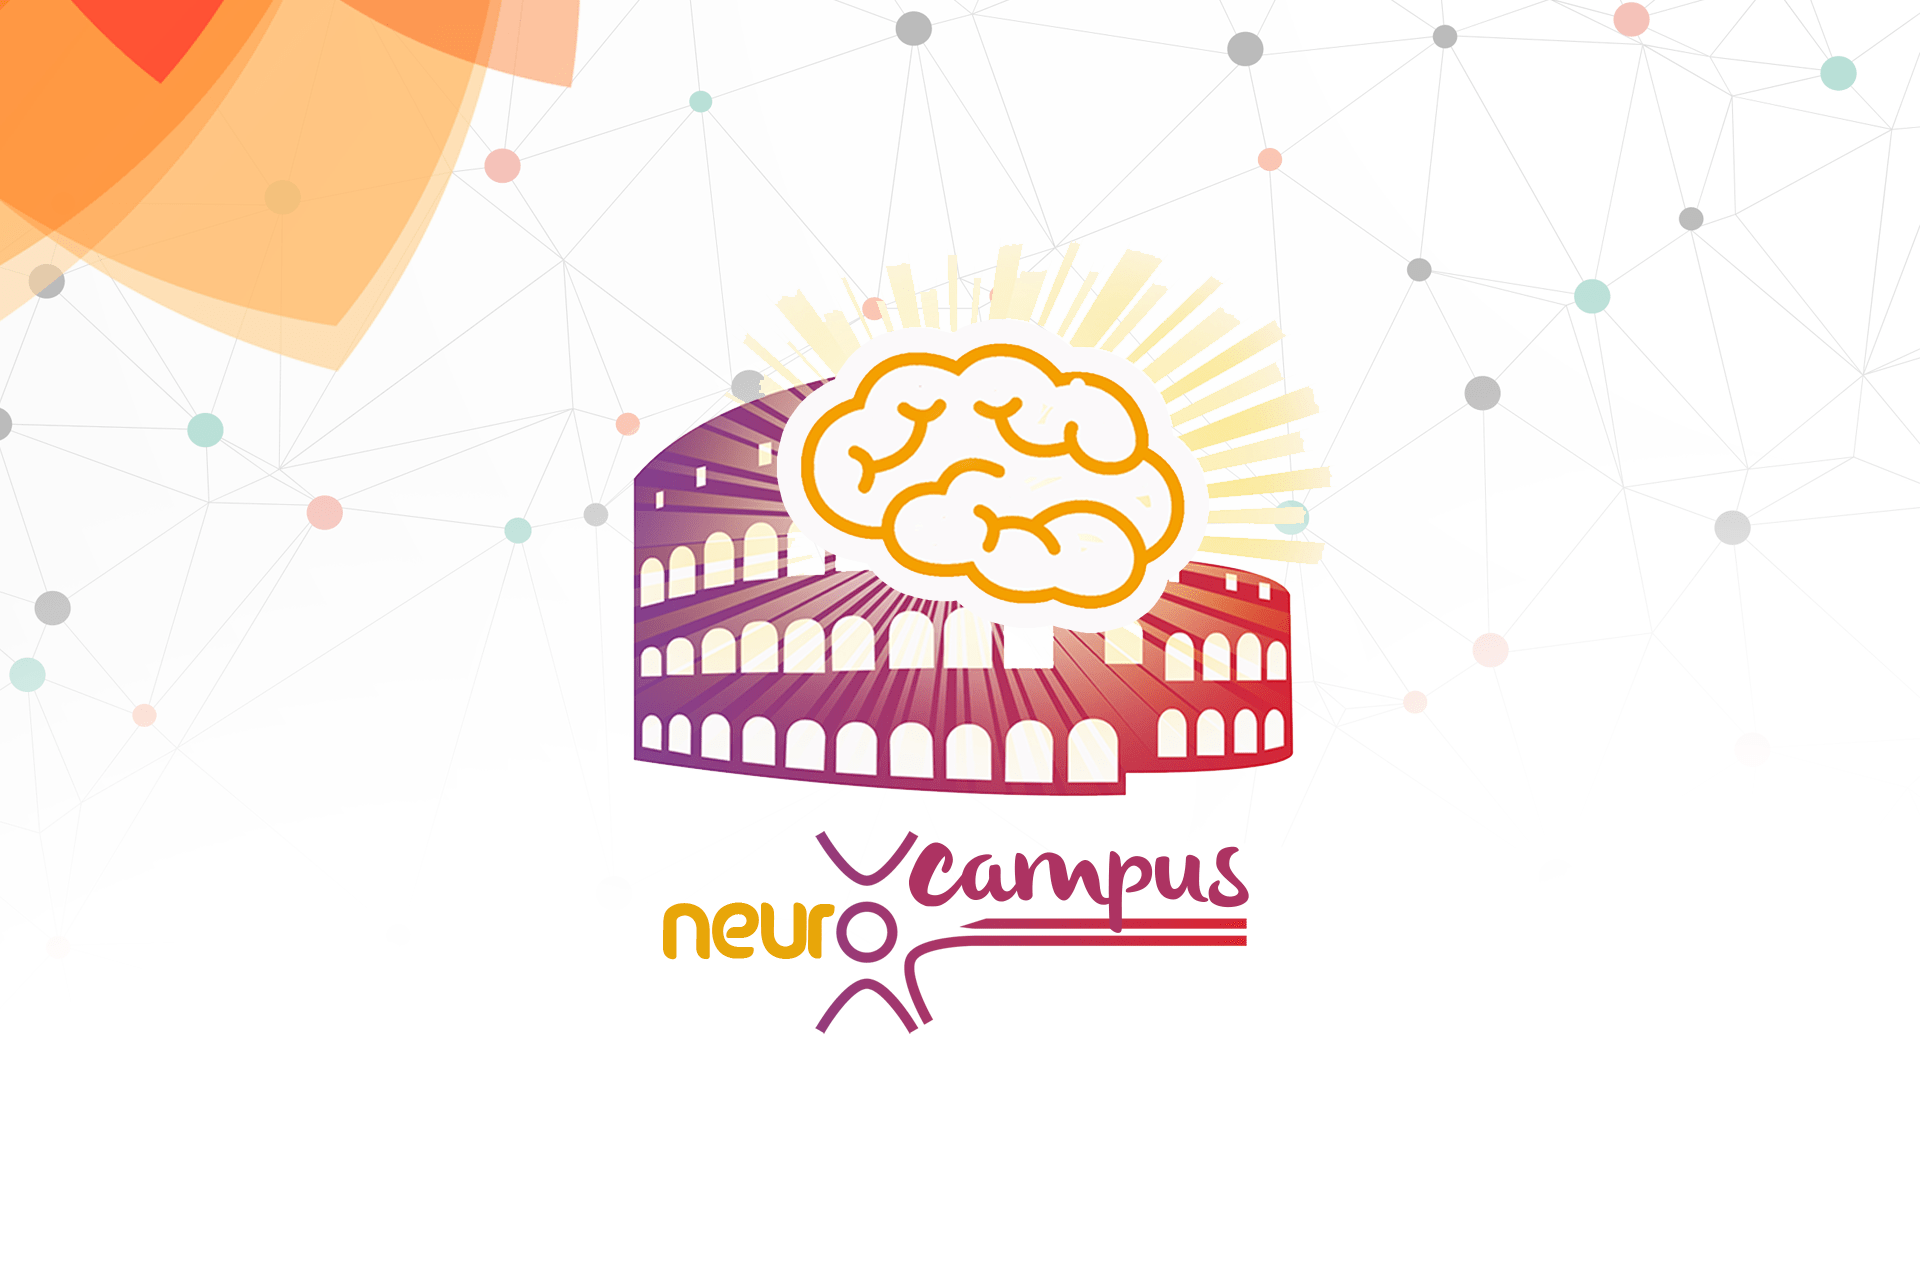 Neurocampus